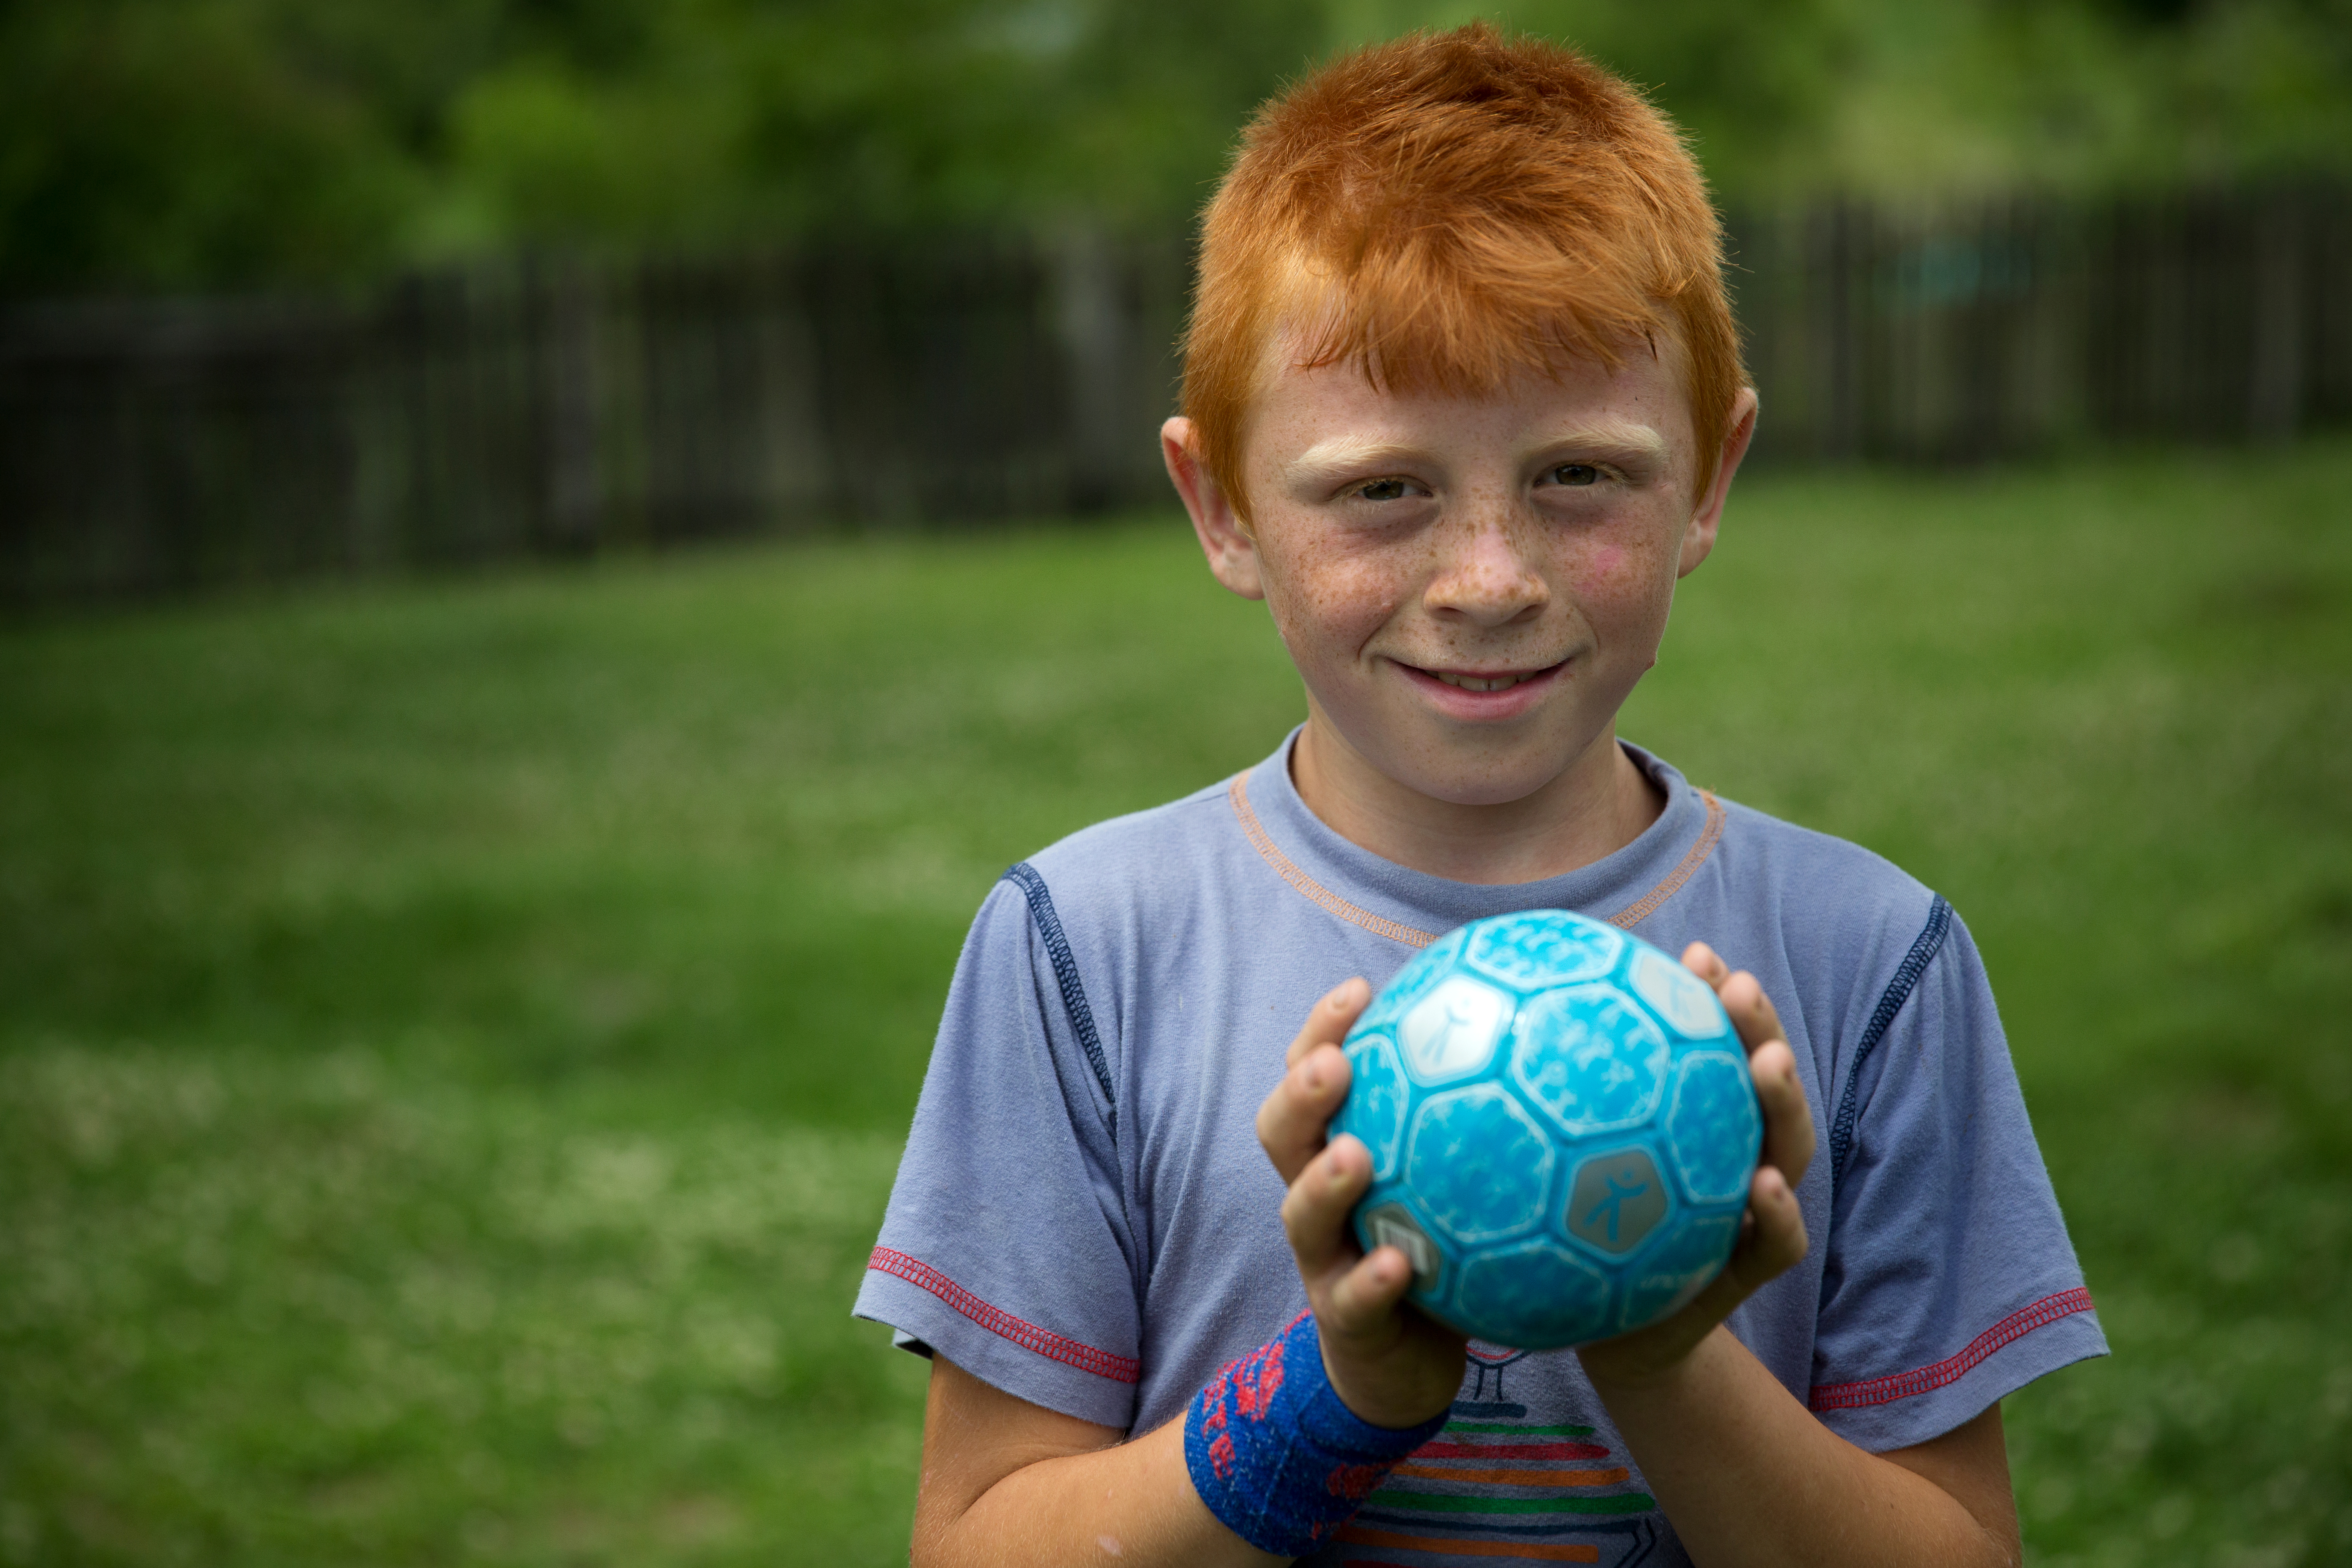 Boy with an UNICEF ball